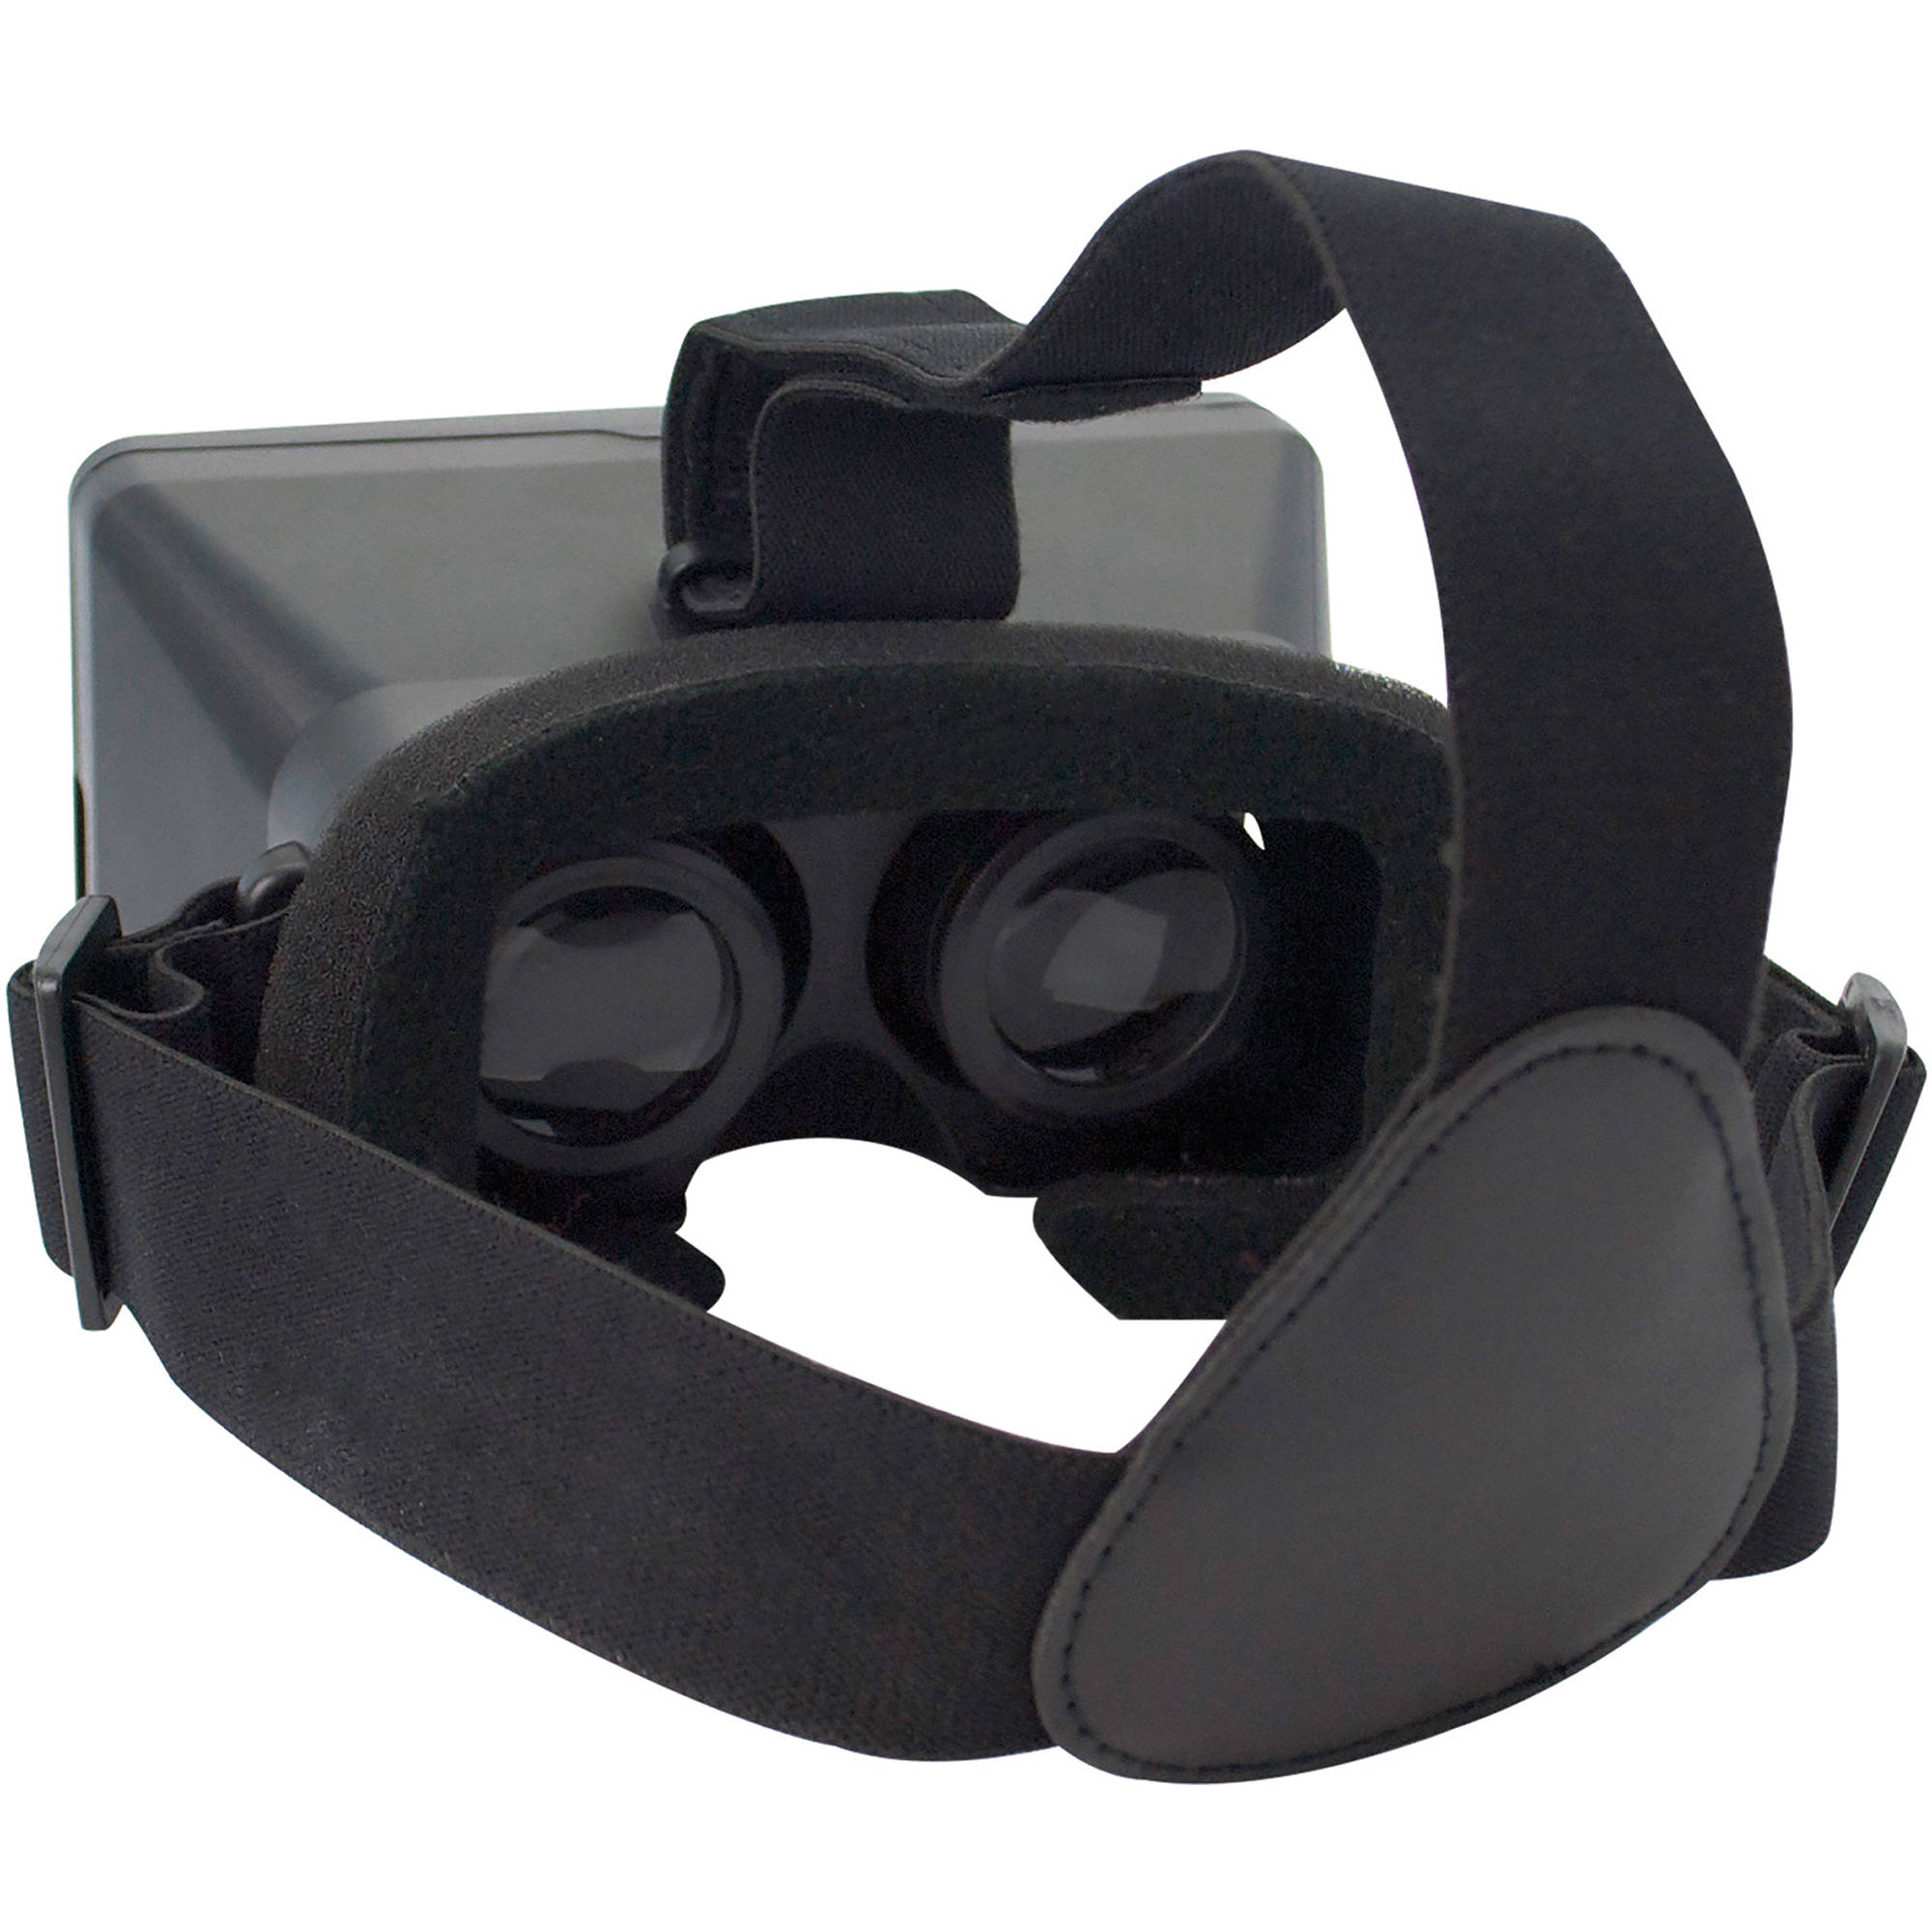 icandy 3d virtual reality goggles smartphone headset 29281ic71. Black Bedroom Furniture Sets. Home Design Ideas